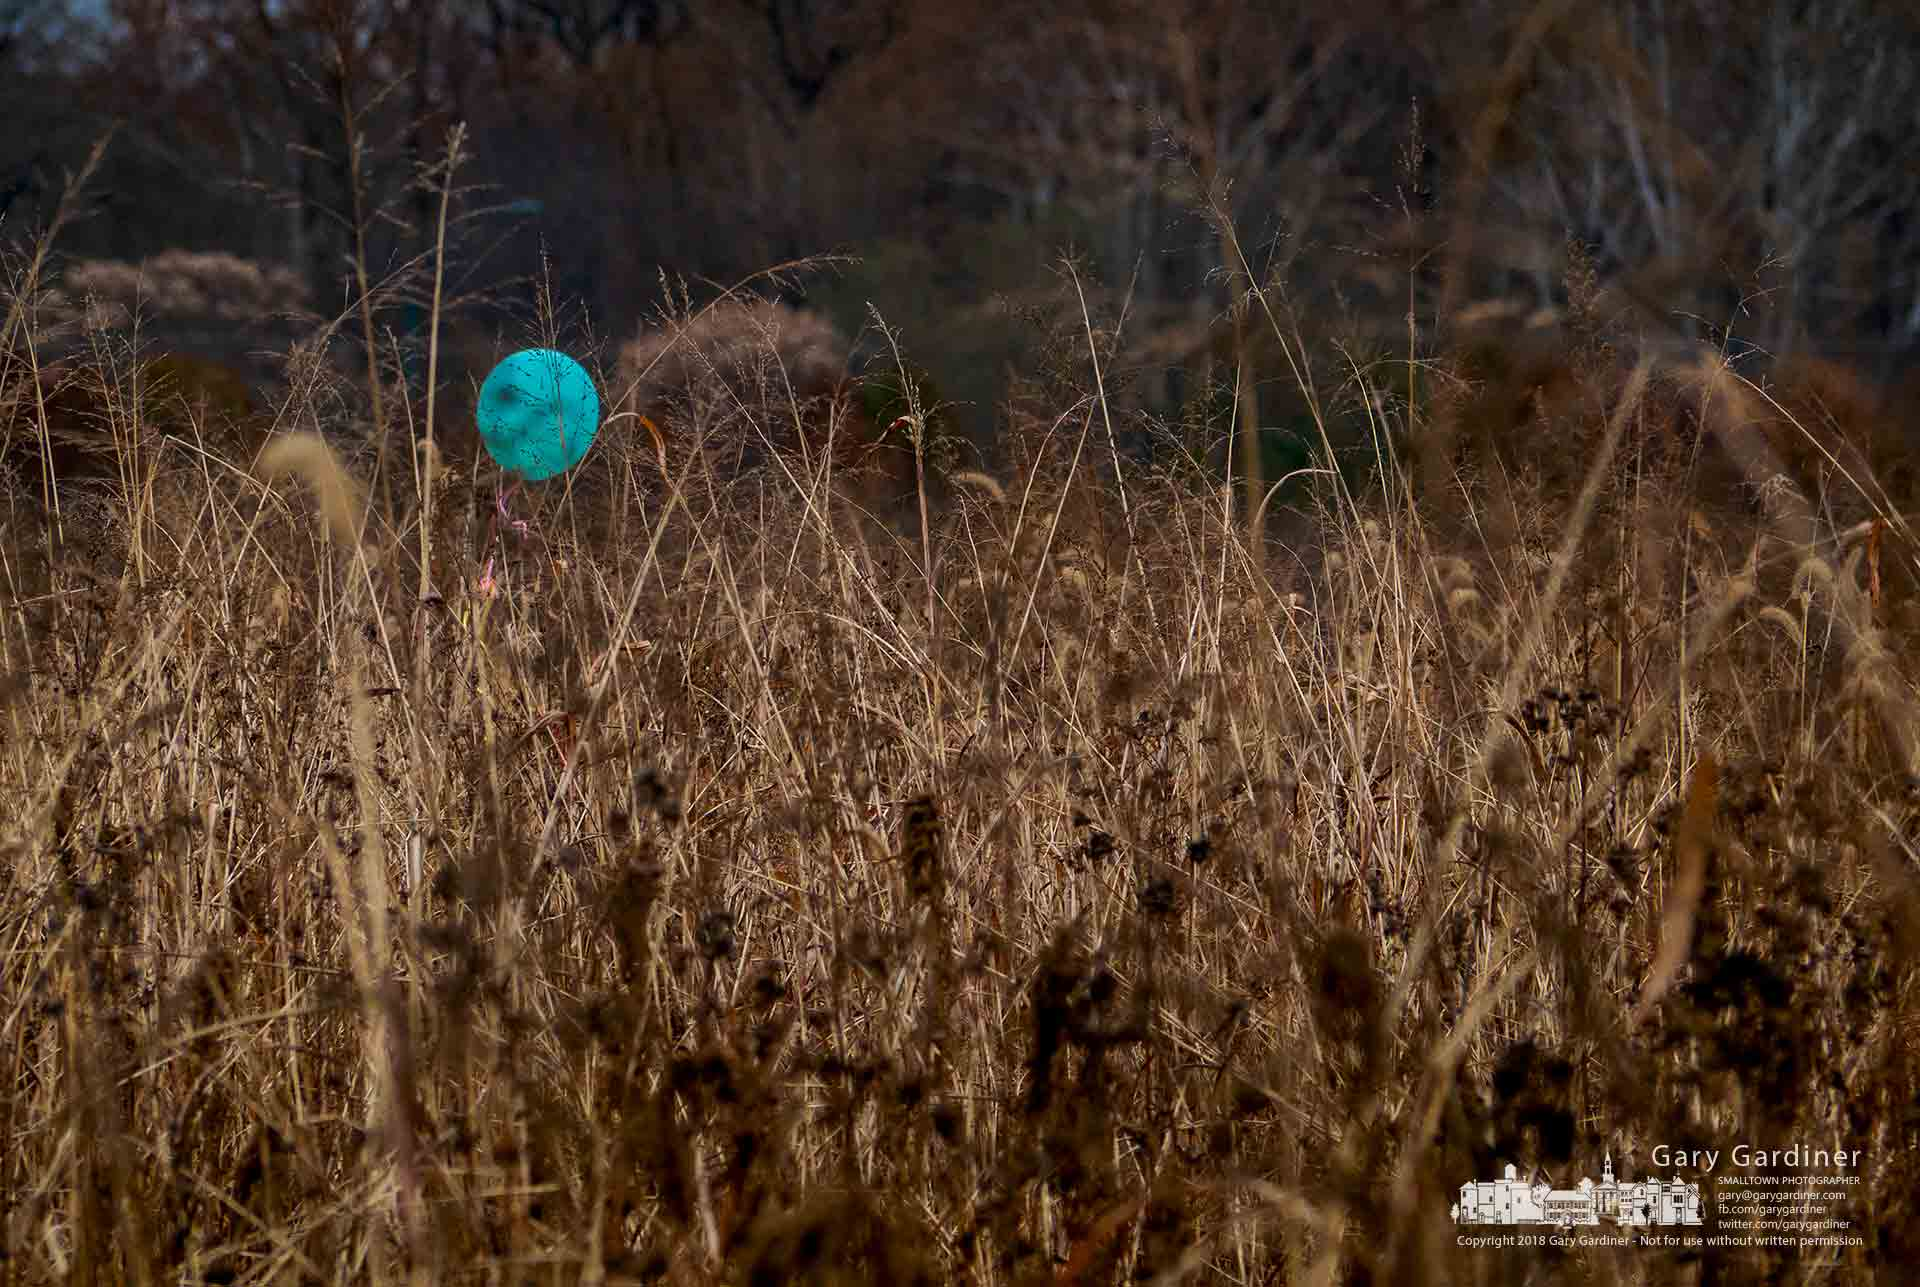 A blue balloon, its string trapped in tall grass in the overgrown field at the Braun Farm, slowly sways in the gentle breeze blowing over the old farm. My Final Photo for Nov. 12, 2018.